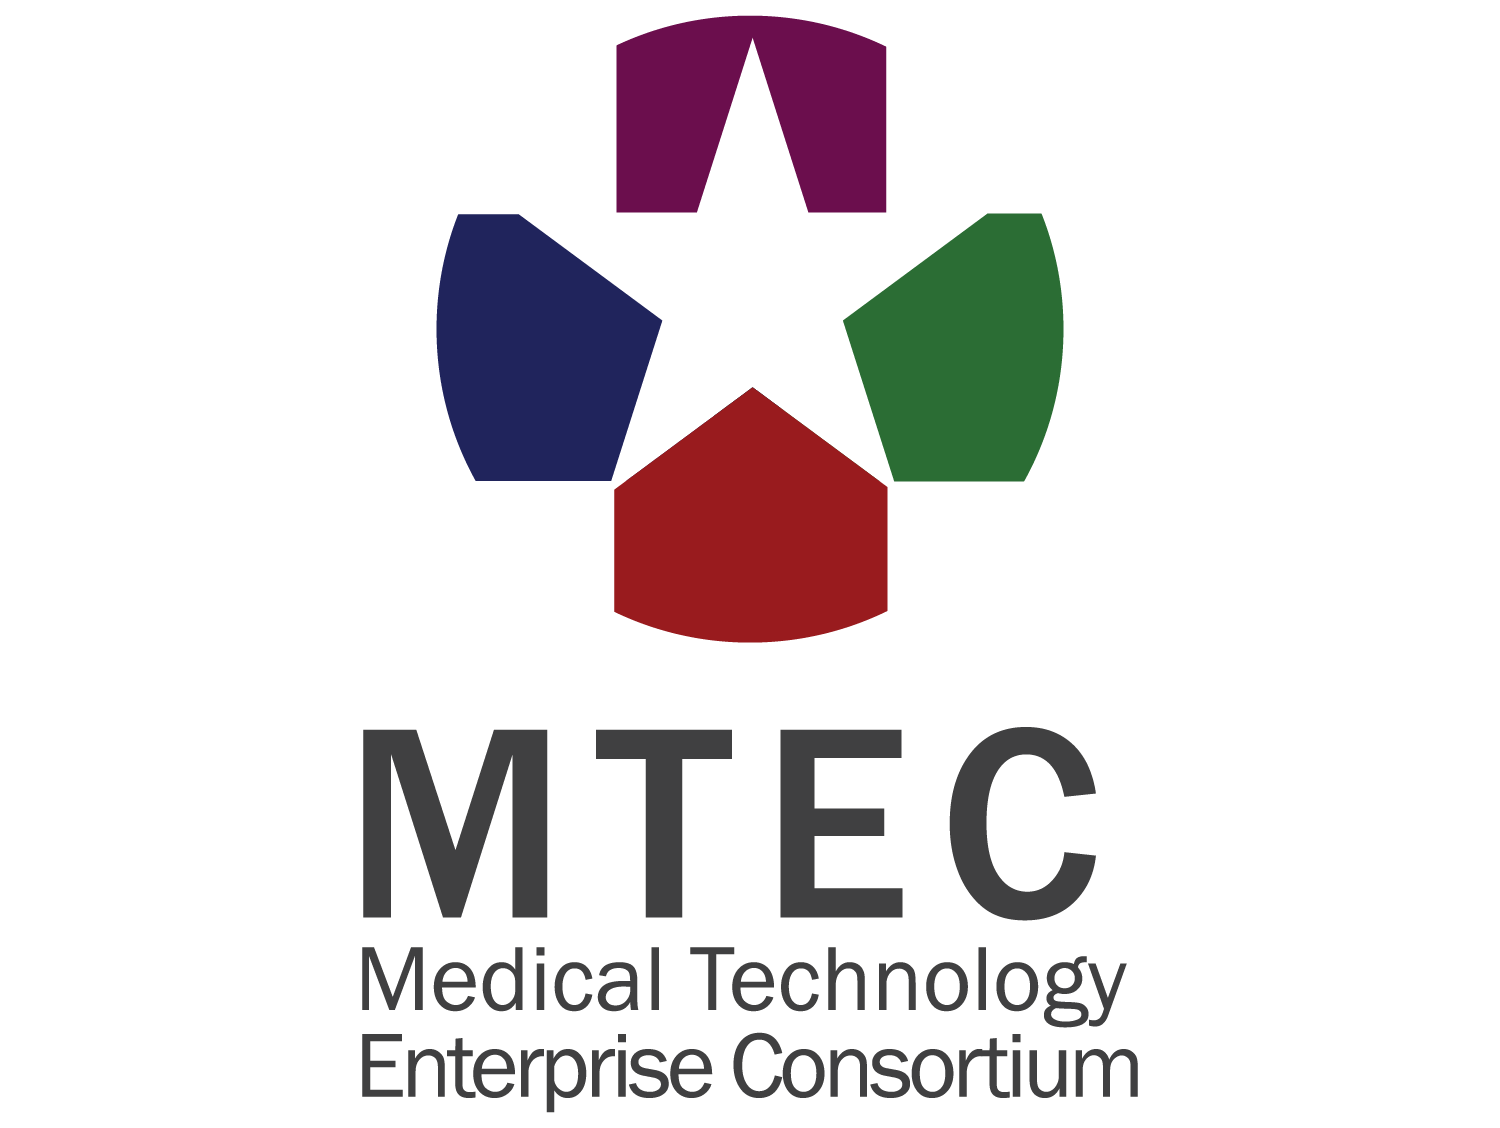 Medical Technology Enterprise Consortium (MTEC)®